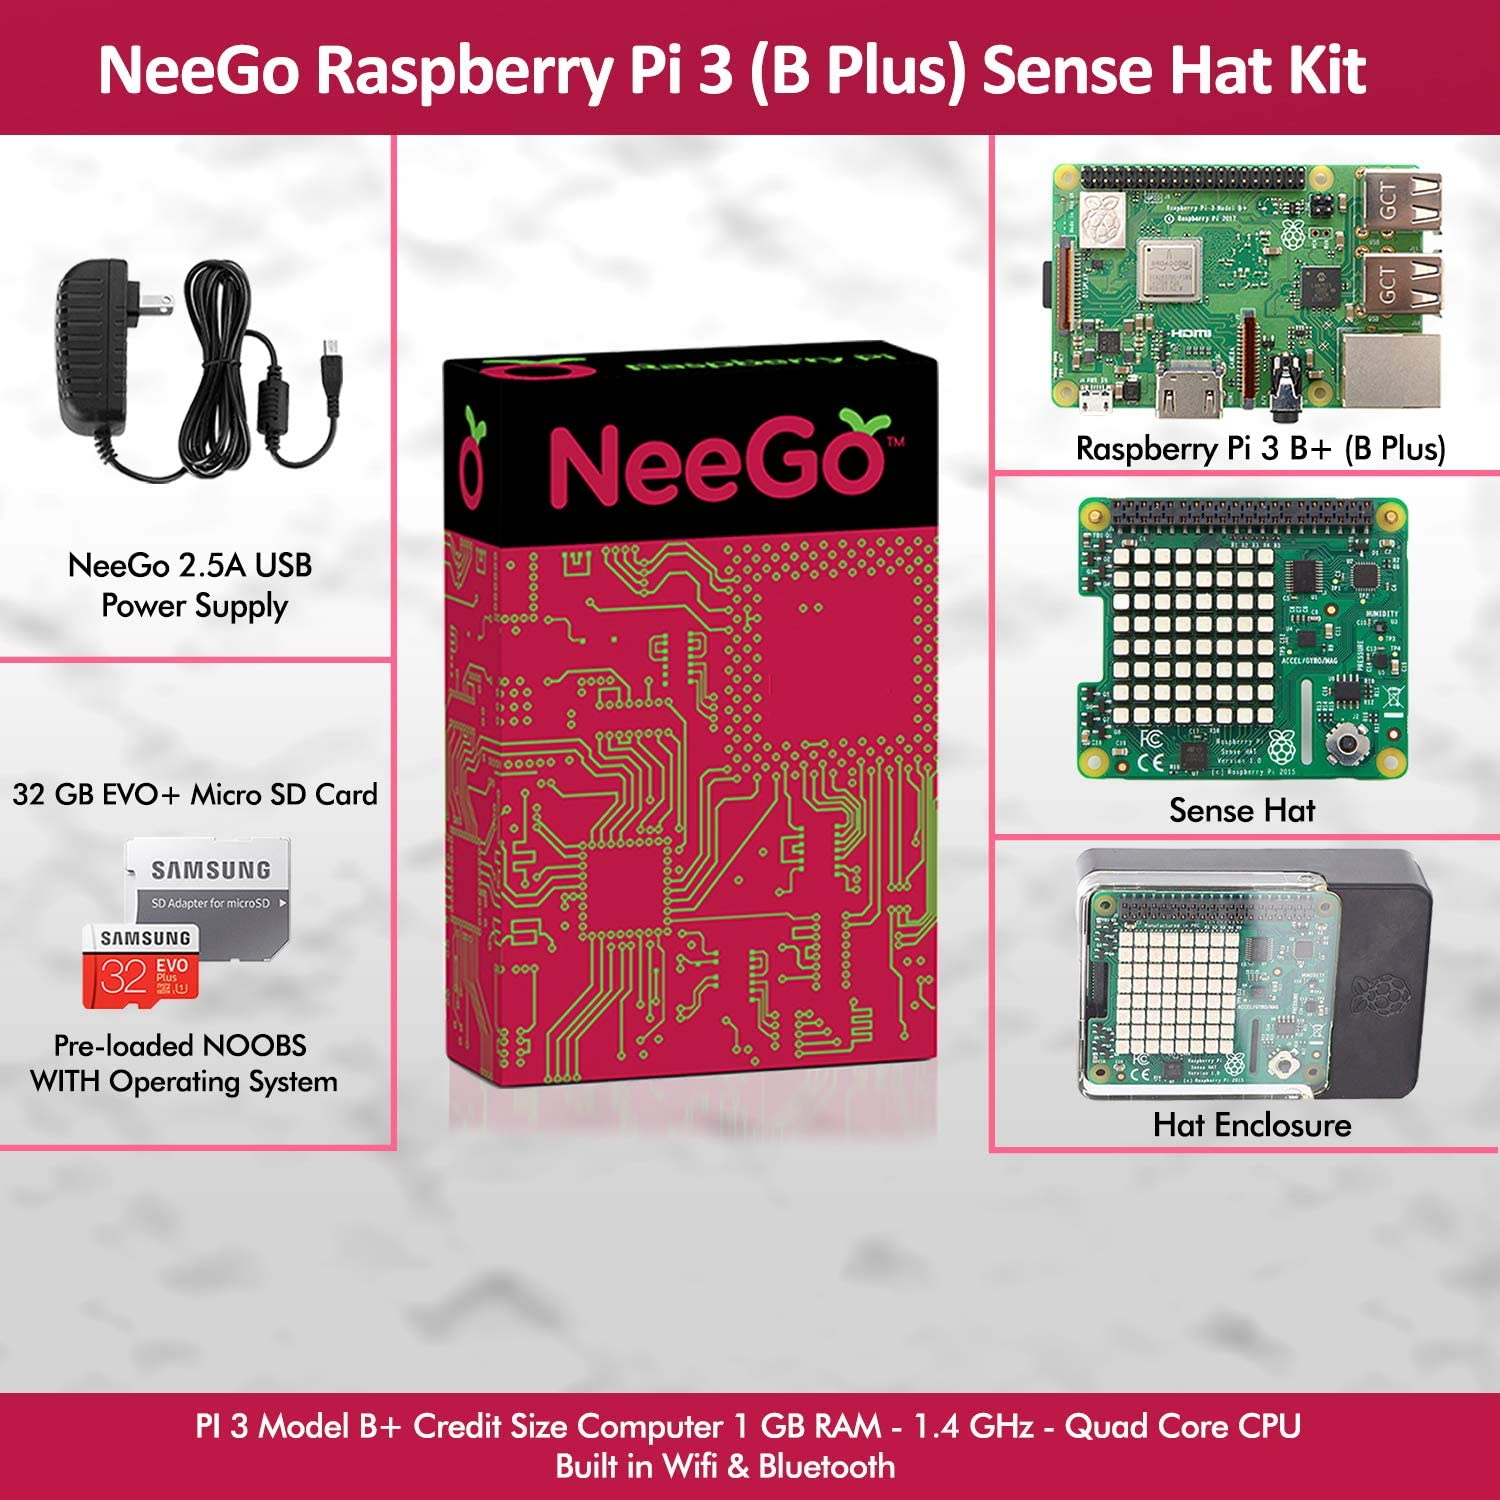 32G SD Card w//Preloaded Noobs Operating System Hat Enclosure /& 6-Foot 2.5A Power Supply NeeGo Bundle 5-Piece Build Your Own Computer Set Includes Raspberry Pi 3 B+ Motherboard Sense HAT Add-On